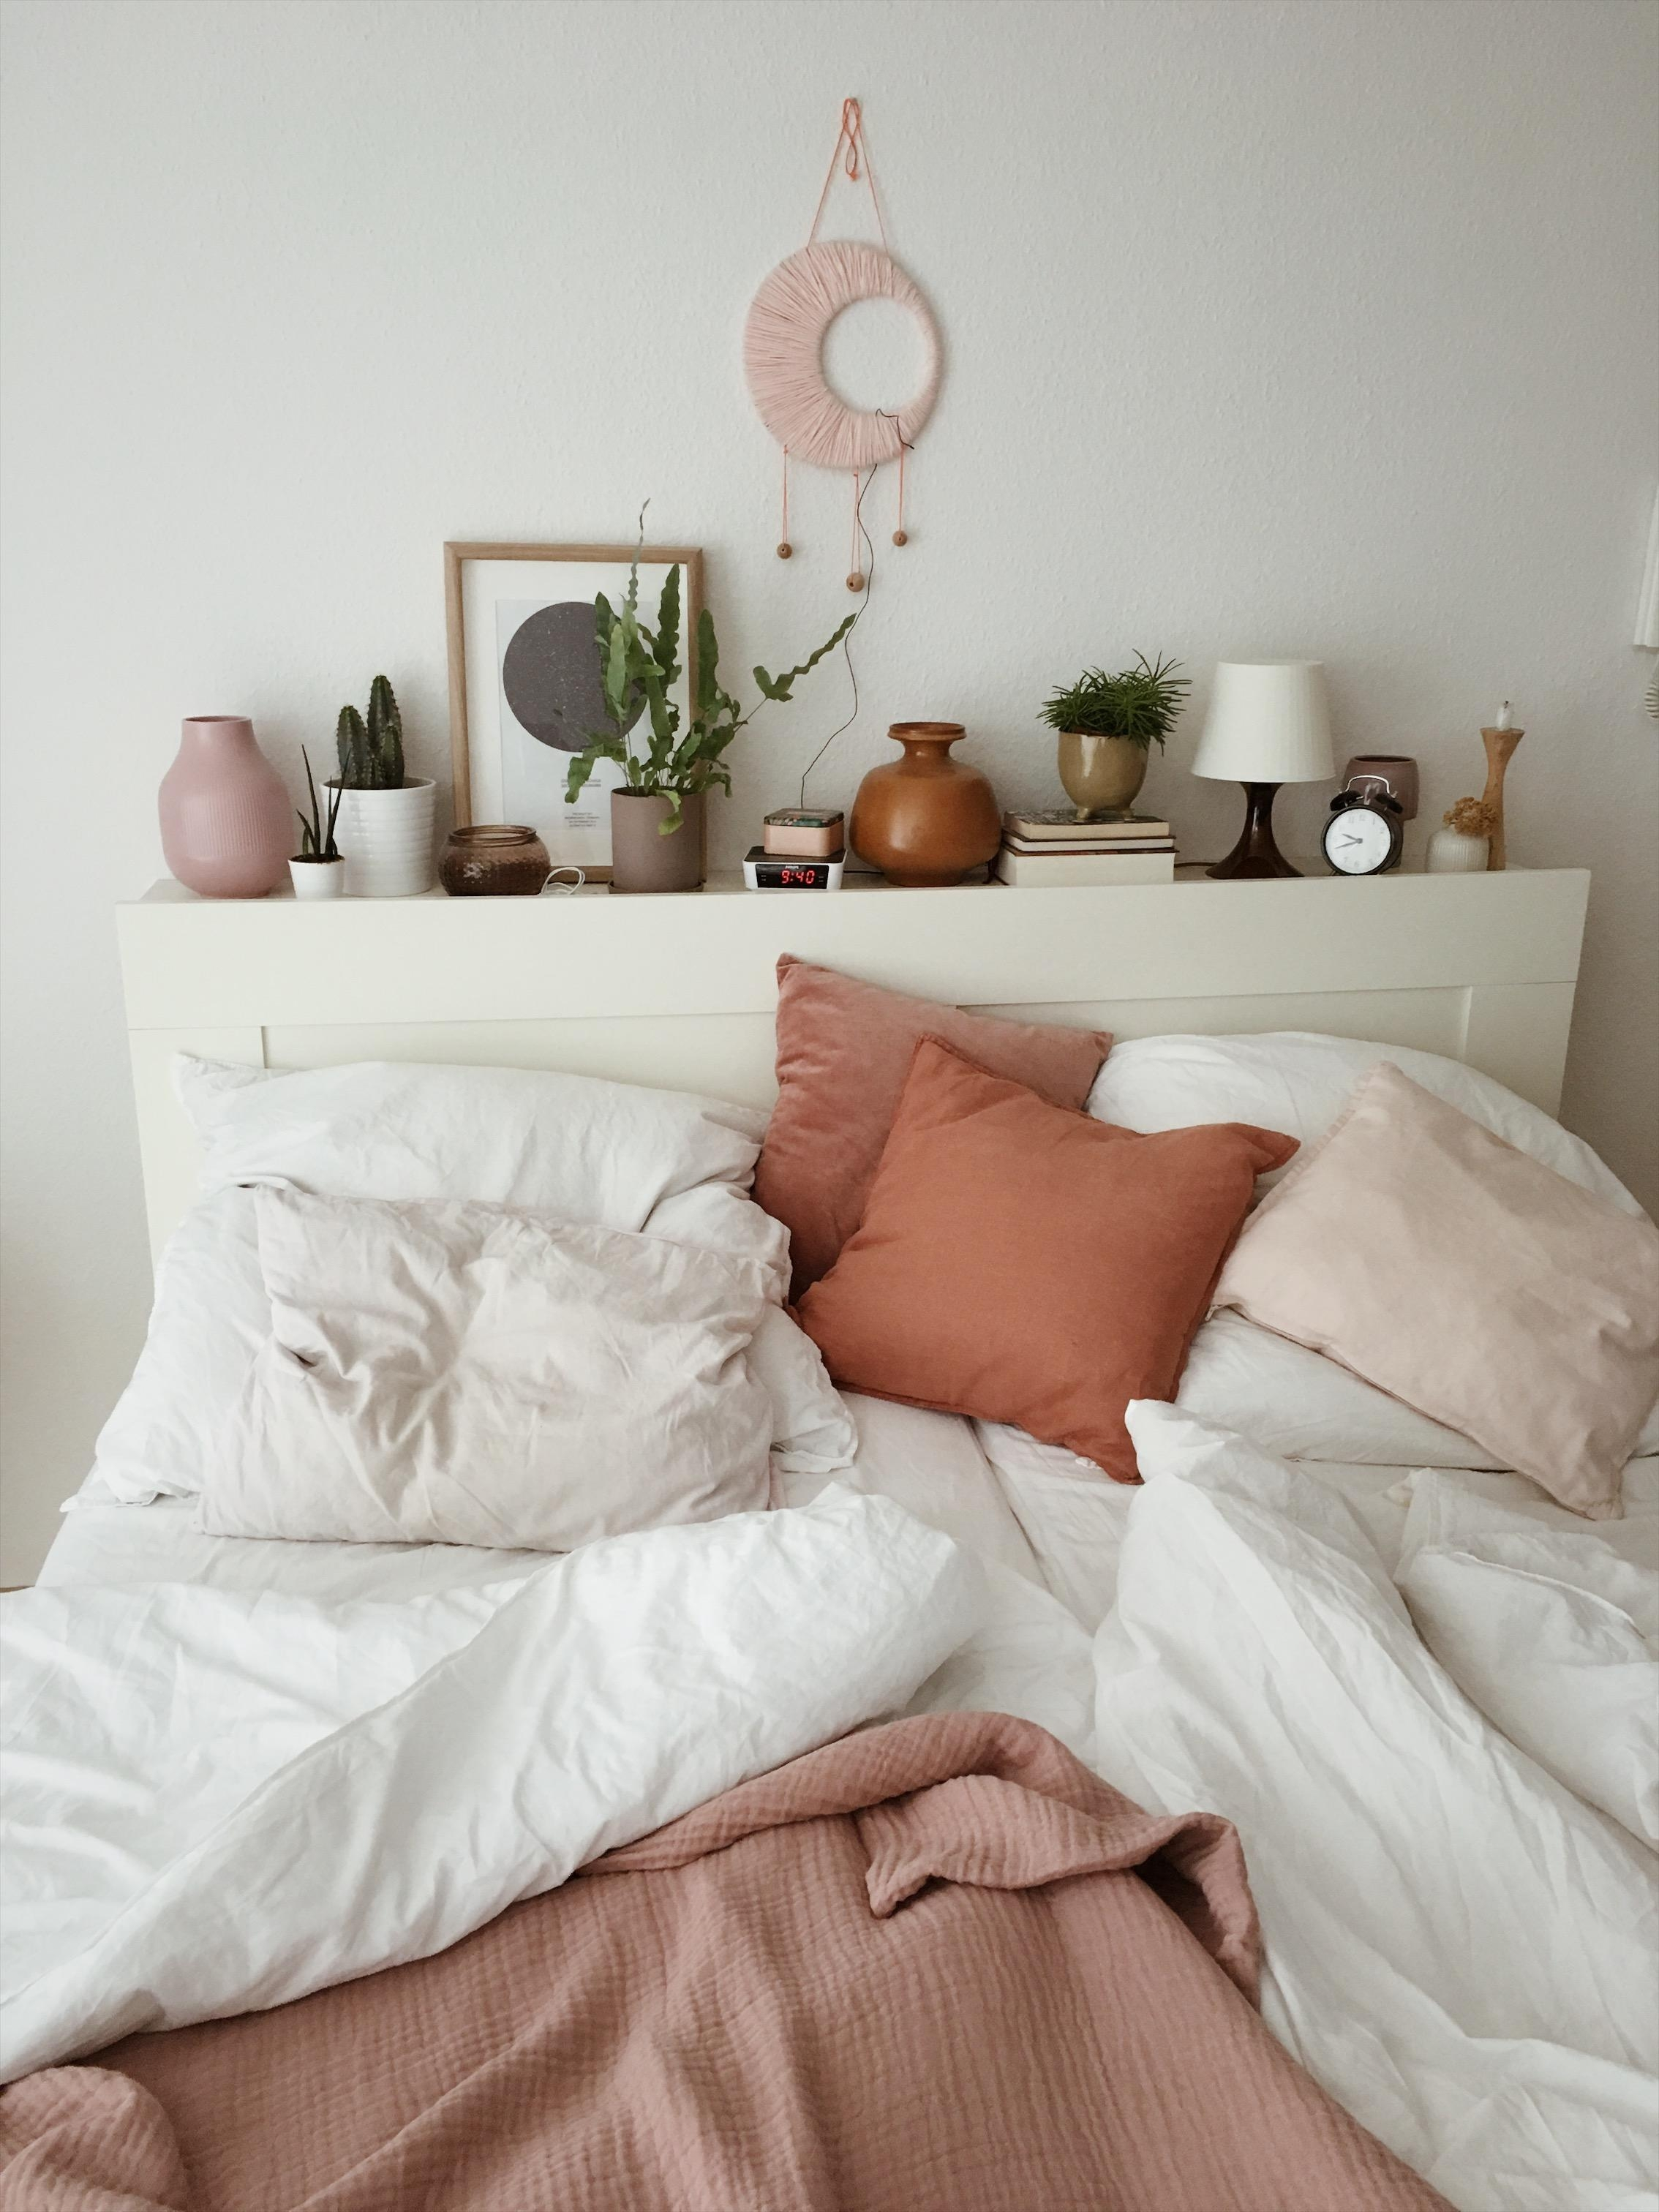 #schlafzimmer #bedroom #bed #bett #kissen #pilows #leinen #decor #hygge #interior